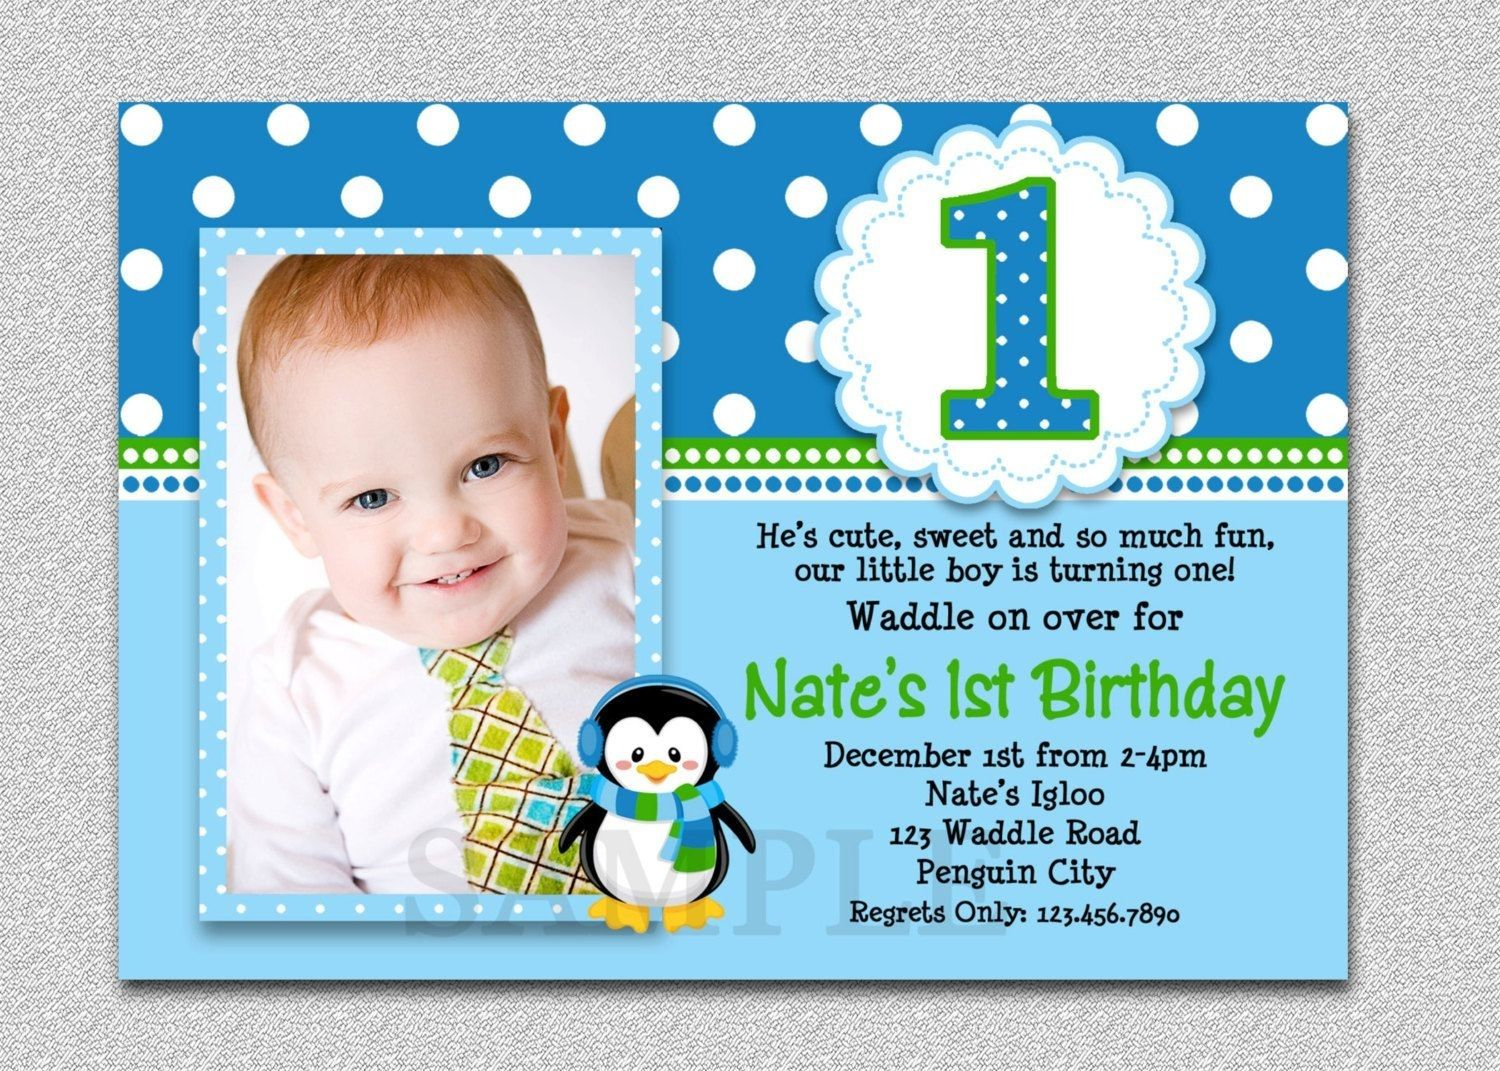 1st Birthday And Baptism Combined Invitations Baptism Perta Birthday Invitation Card Template First Birthday Invitation Cards 1st Birthday Invitation Wording